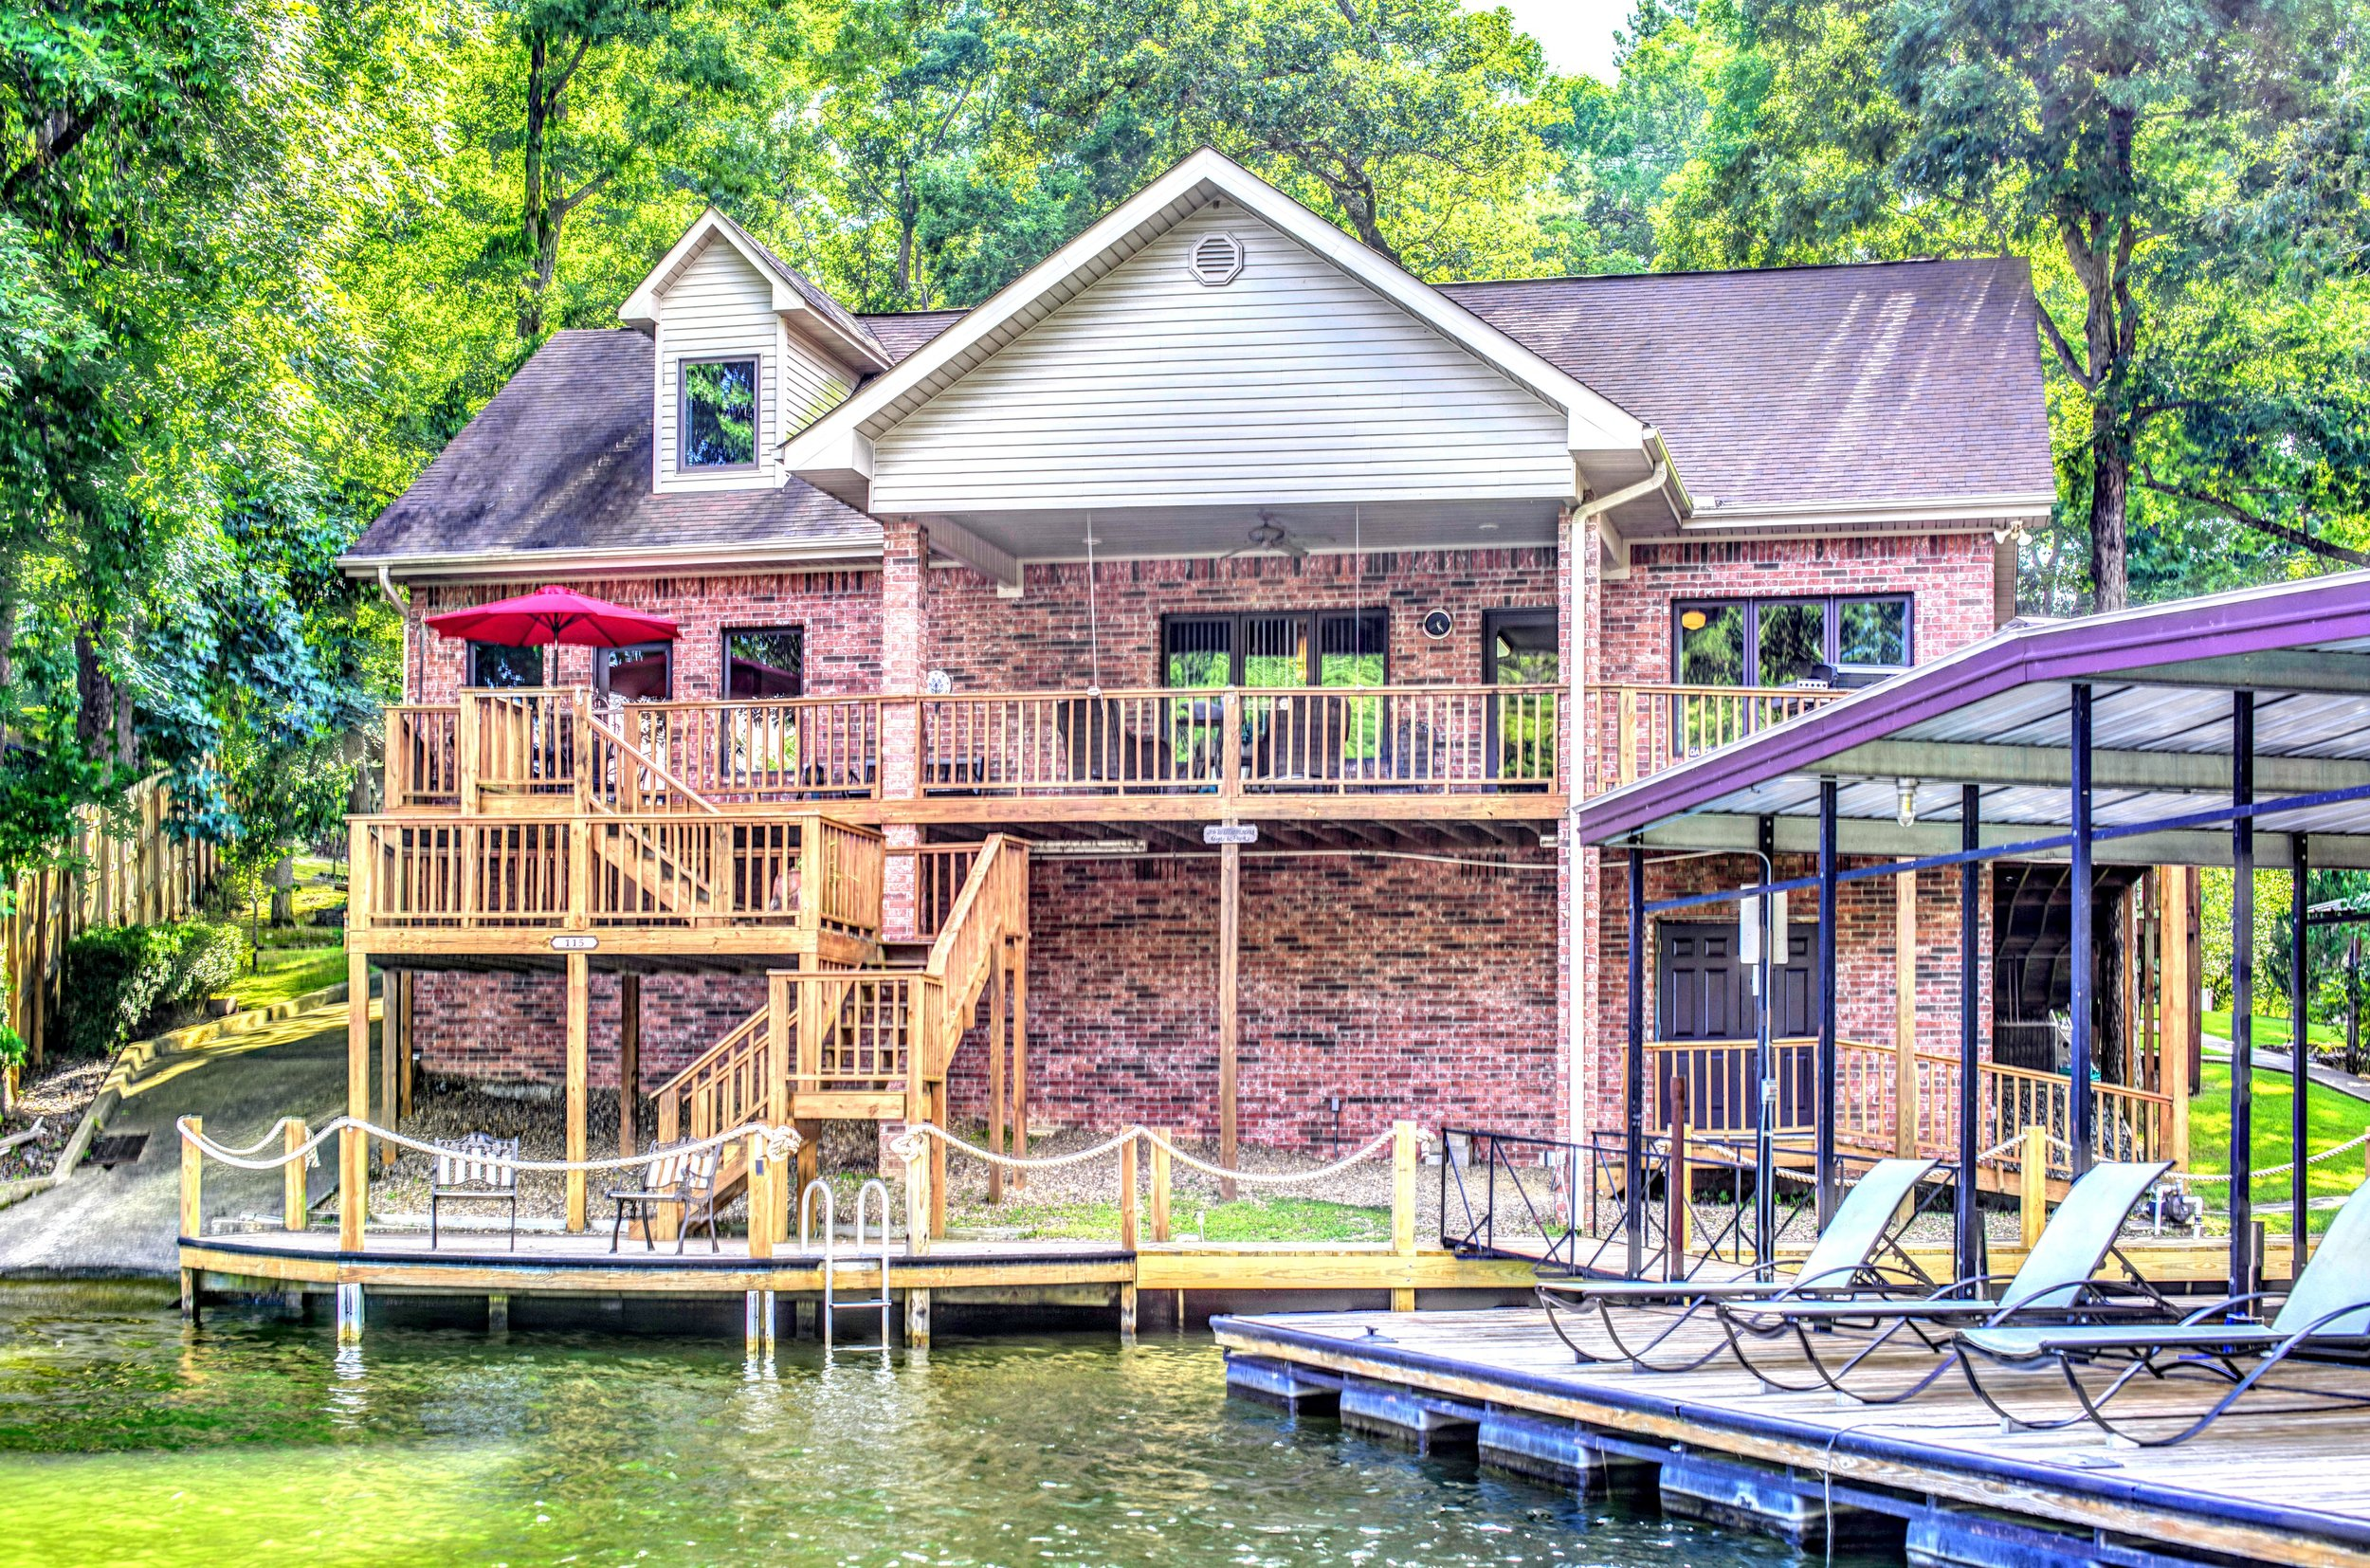 Lake_house-3 copy 2.JPG